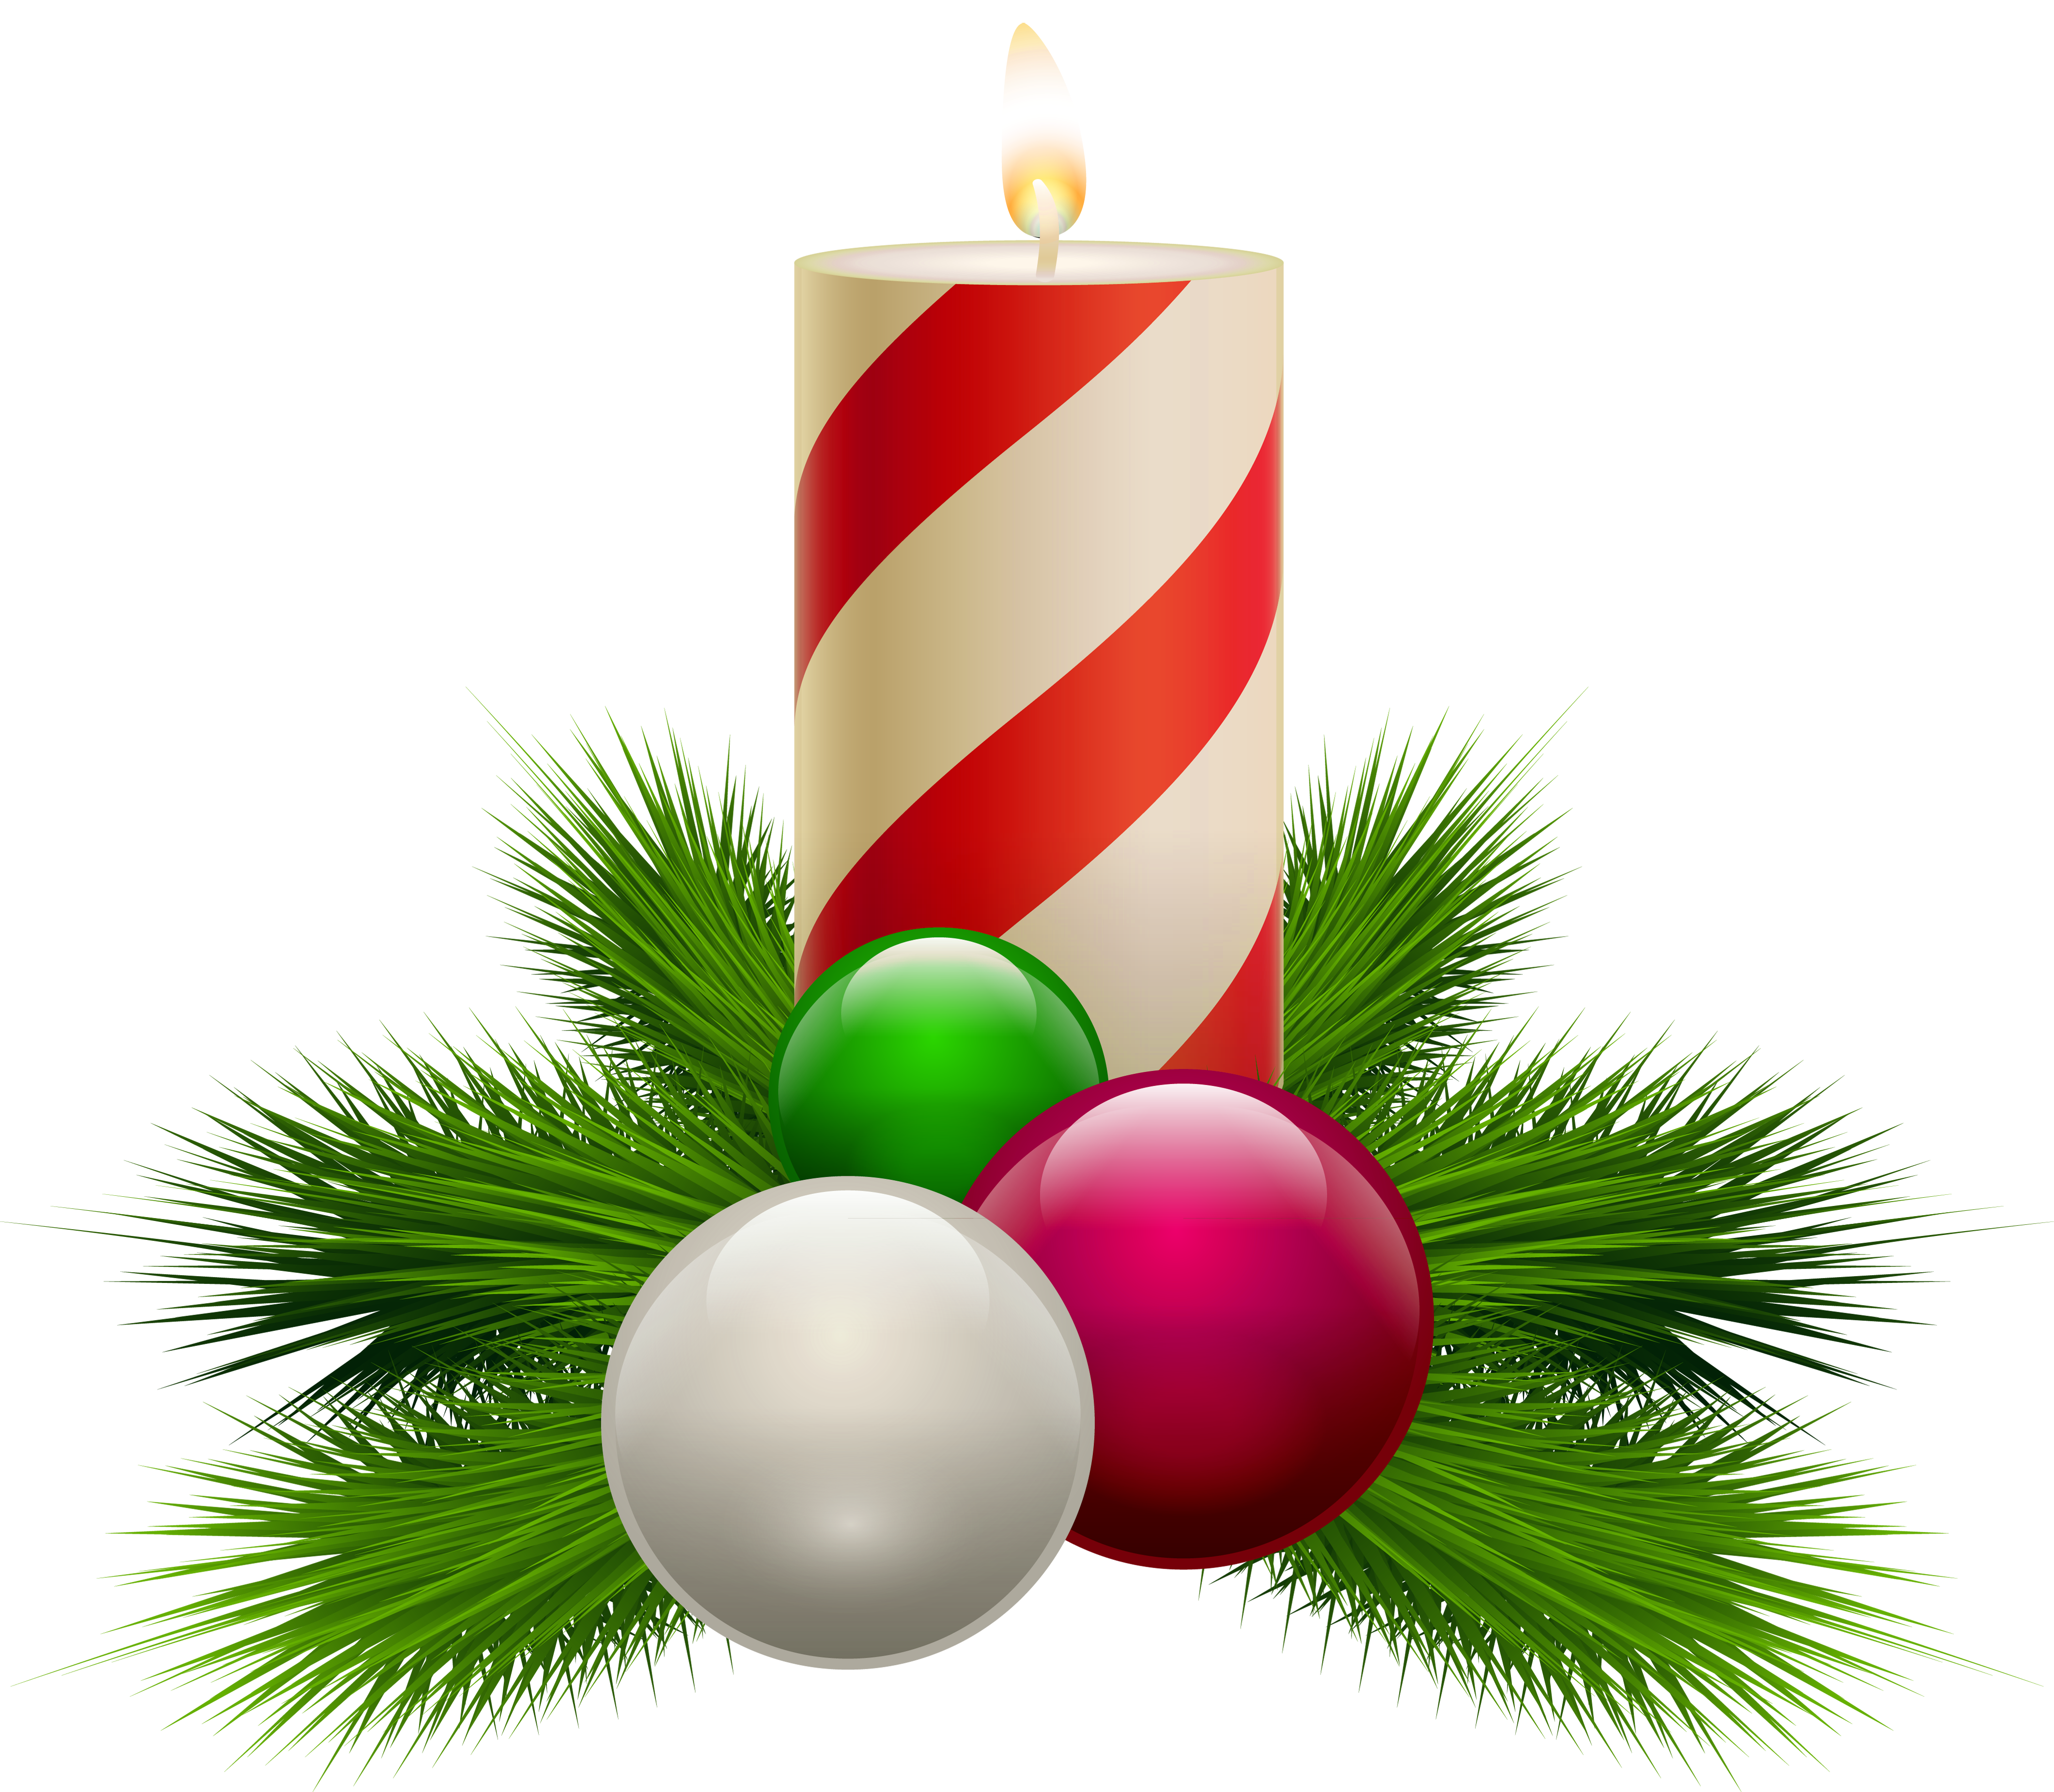 Christmas clipart transparent background free library Transparent Christmas White Candle PNG Clipart free library